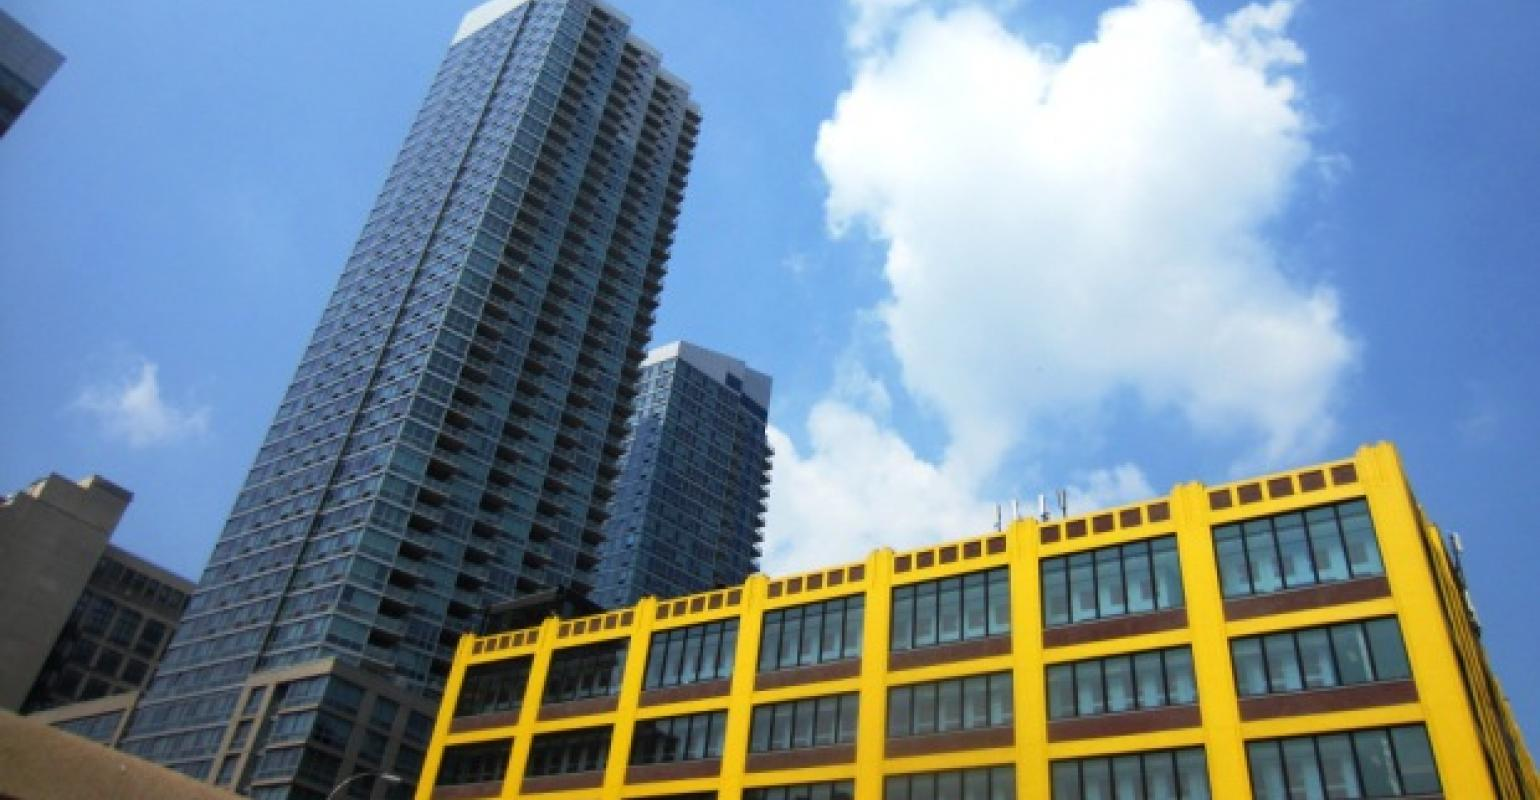 Self Storage And The City: Gotham Mini Storage Conversion Project Takes  Manhattan By Storm